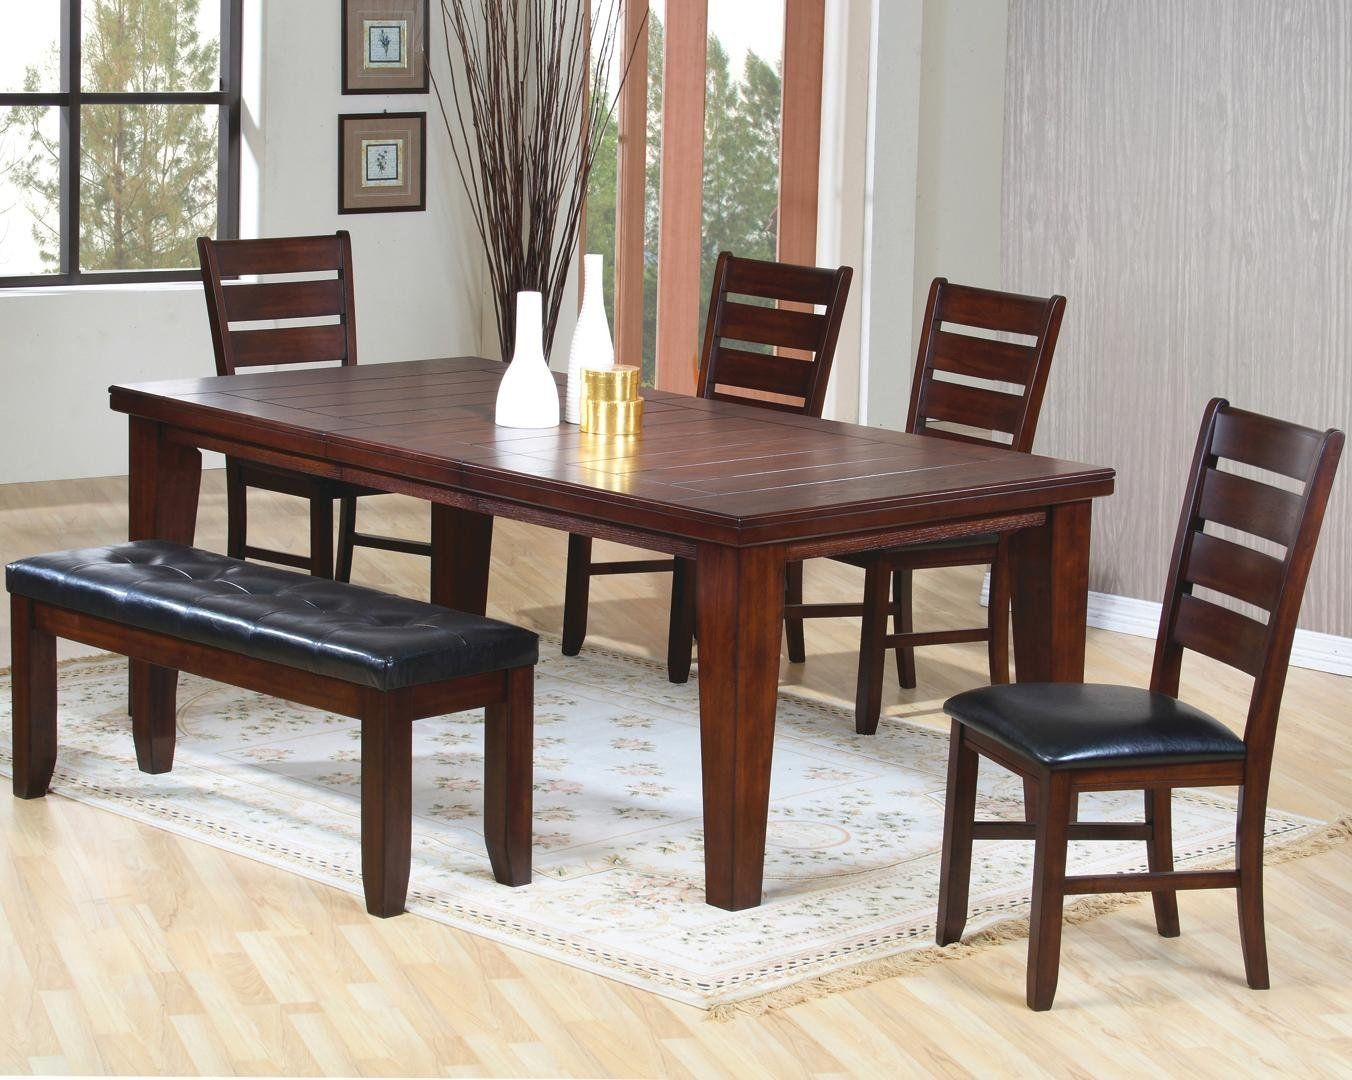 Dining Room Chairs \u2013 Irreplaceable Tips While Shopping for Discount Dining Chairs & Dining Room Chairs \u2013 Irreplaceable Tips While Shopping for Discount ...